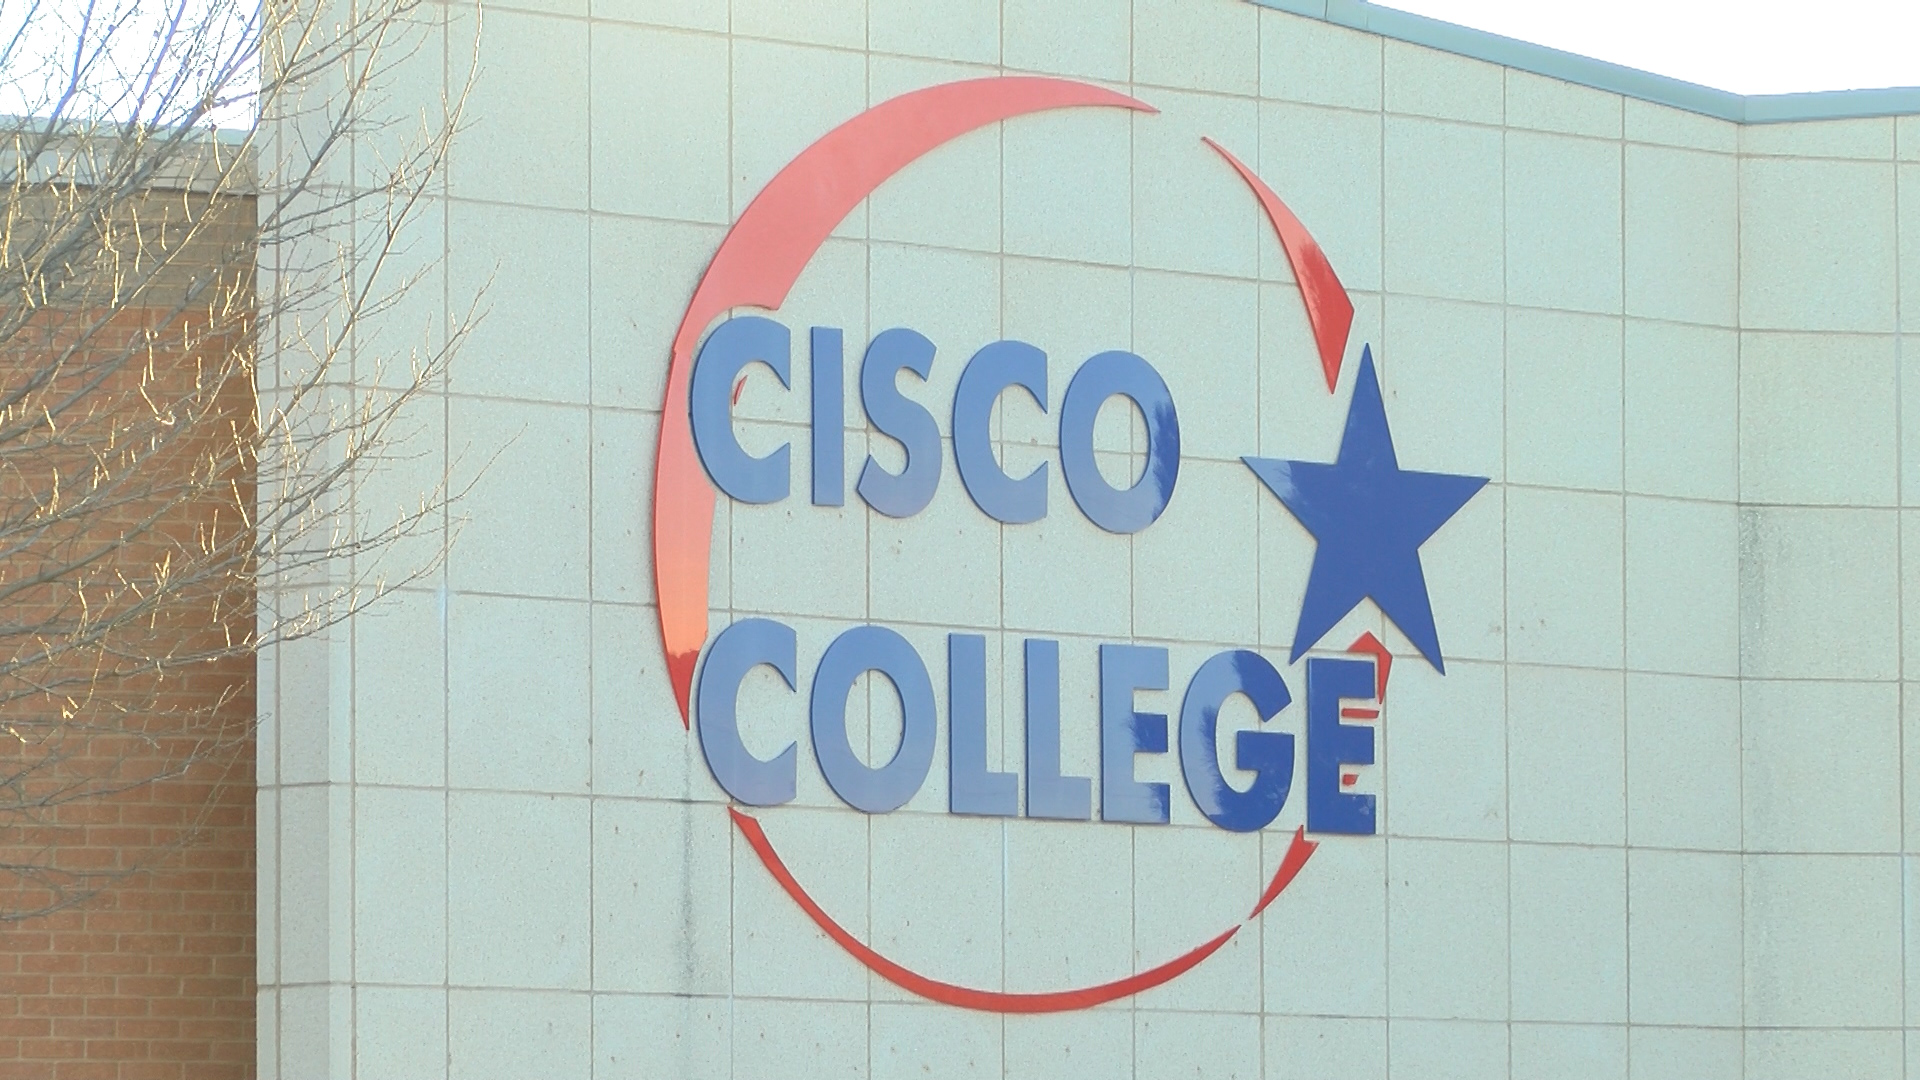 Cisco College.jpg